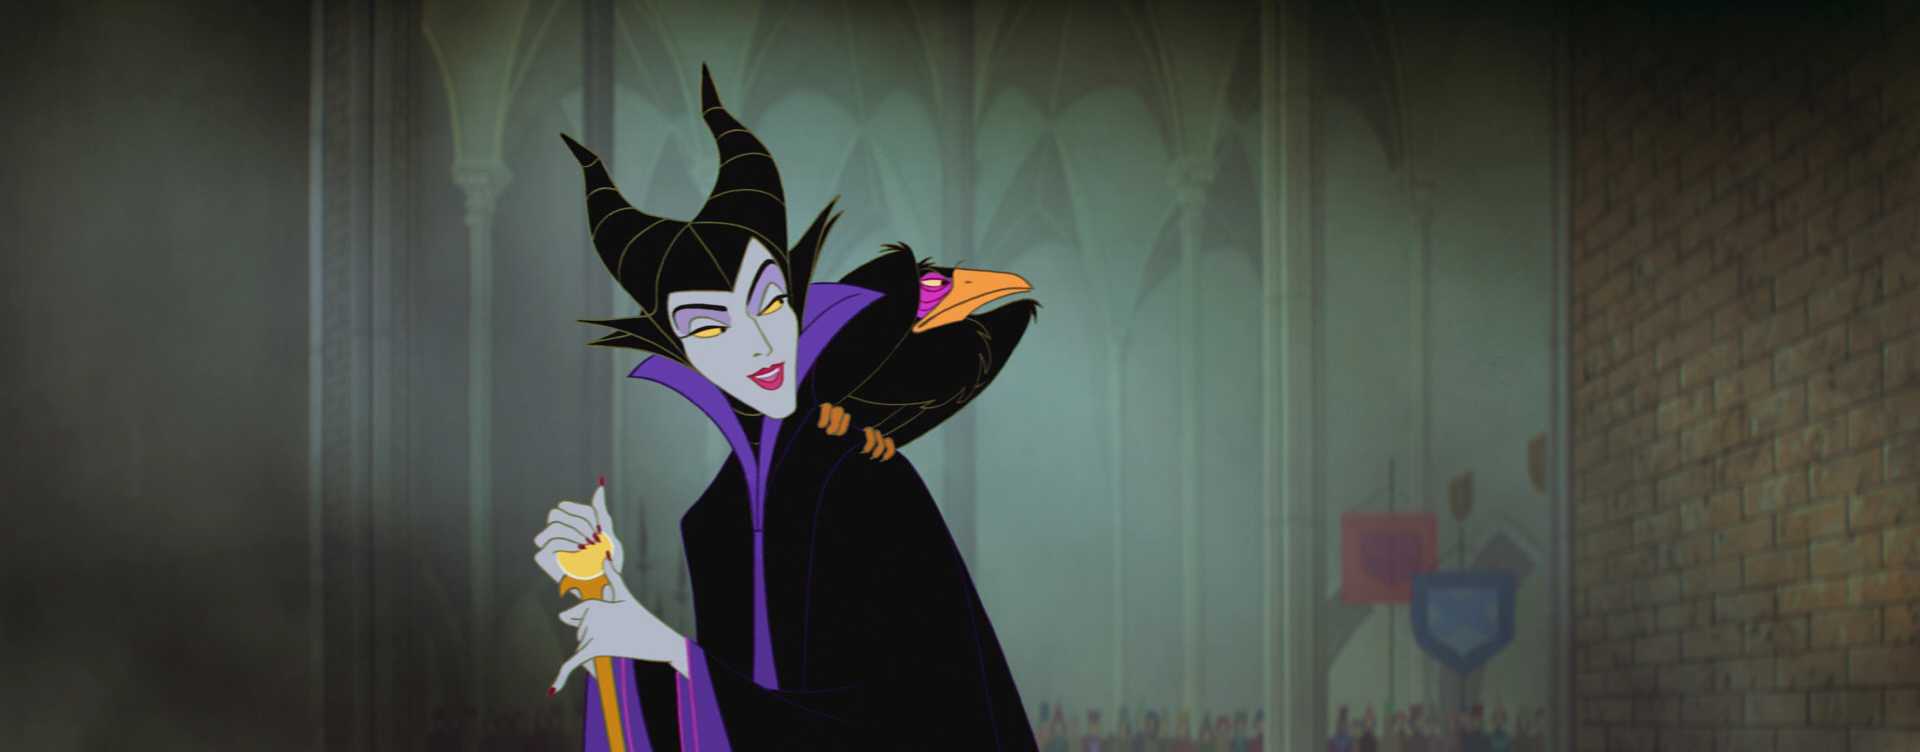 maleficent | Image - Maleficent's Facial Expression 3 - kmp.PNG - Disney Wiki